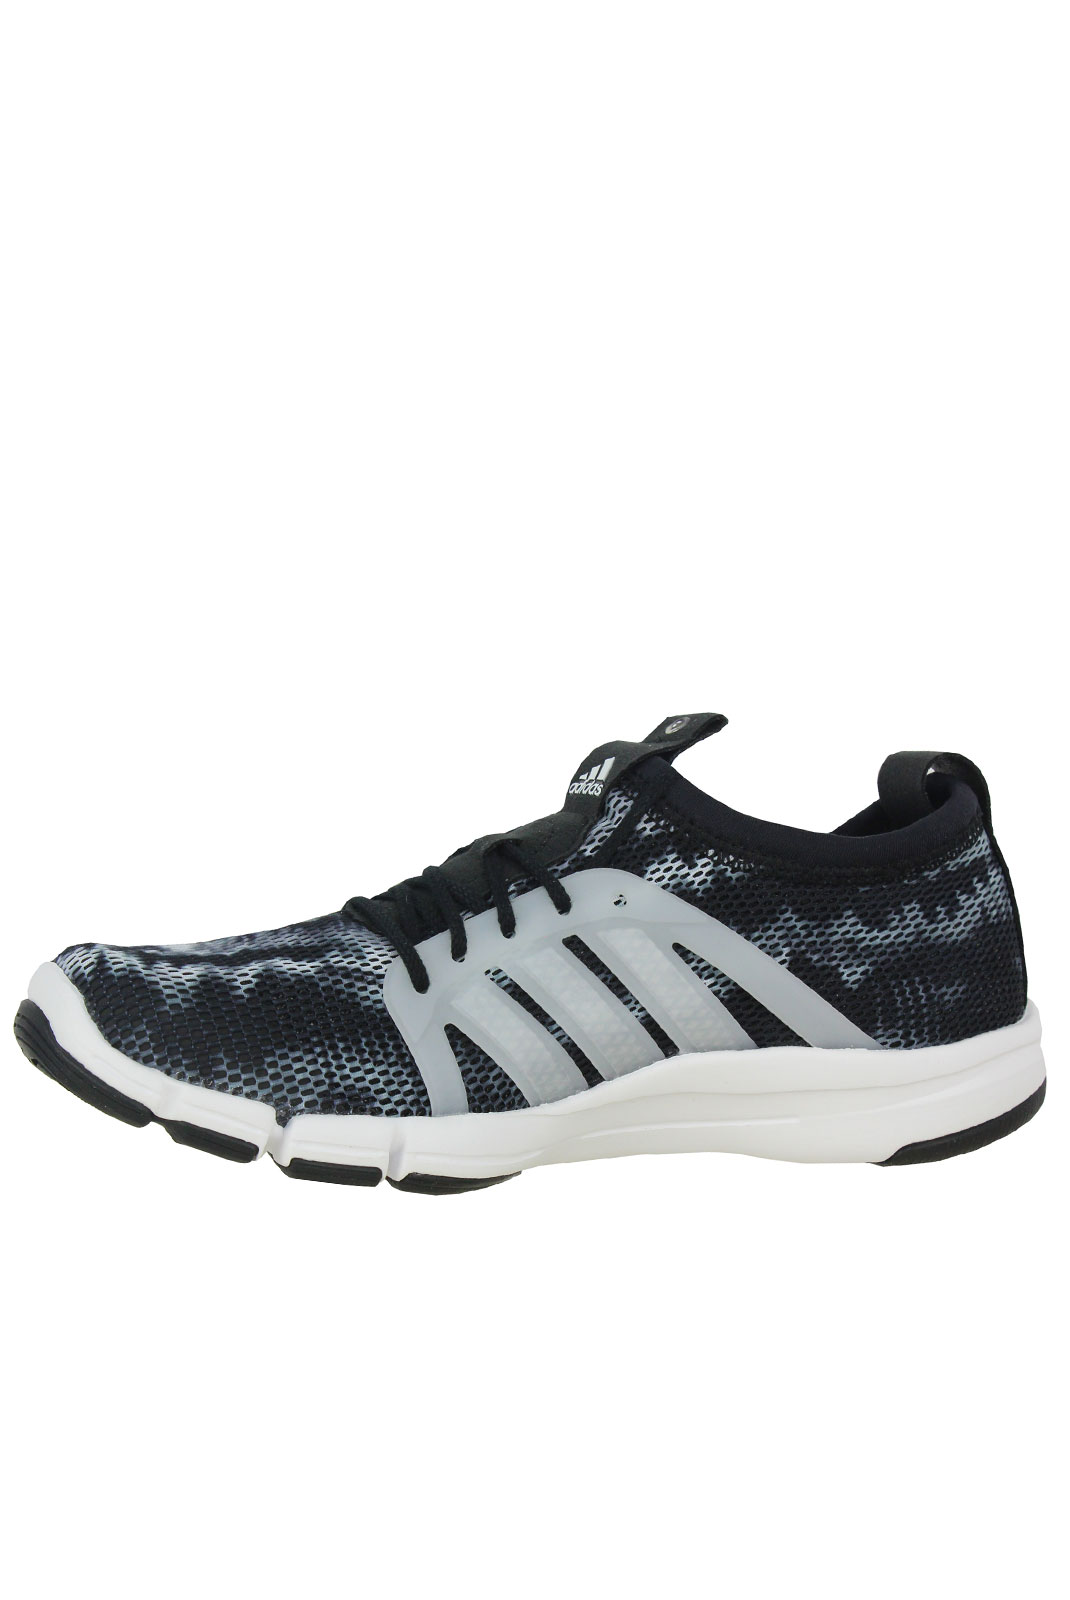 Baskets / Sneakers  Adidas BB3873 Core grace BLUE